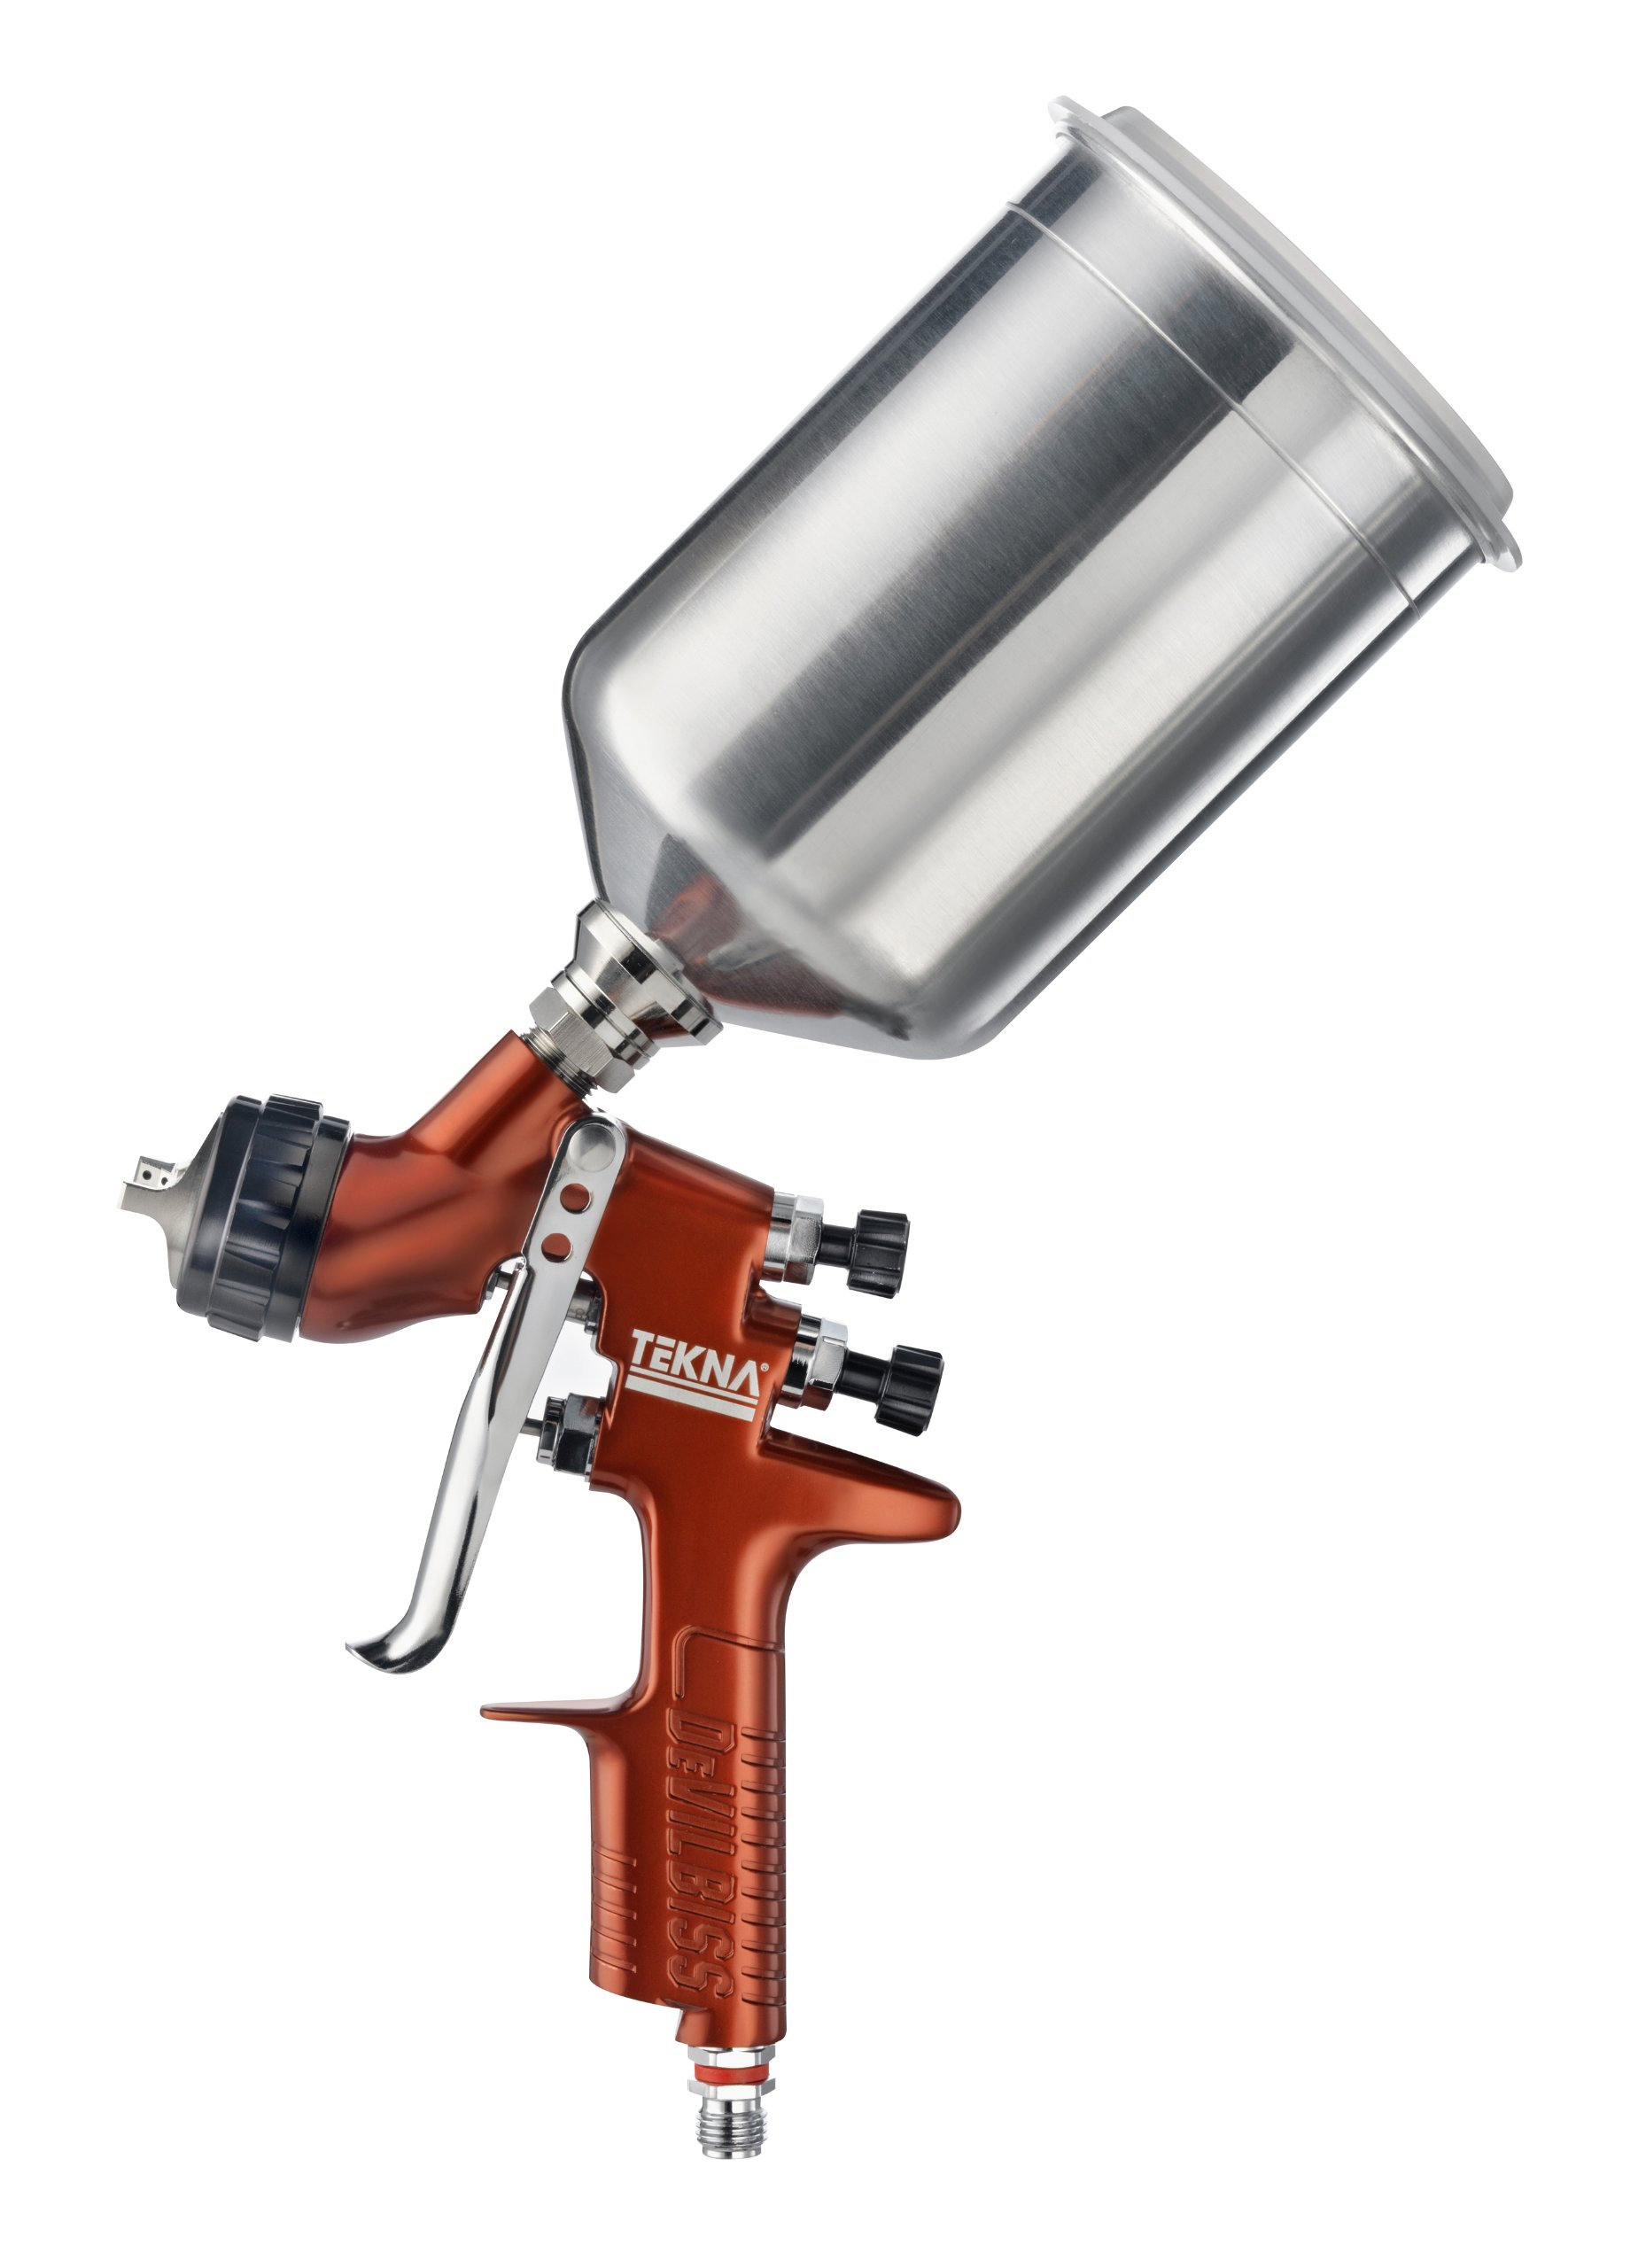 TEKNA 703676 Copper 1.2mm/1.3mm Fluid Tip High Efficiency Spray Gun with 900cc Aluminum Cup and 7E7 Air Cap by Tekna